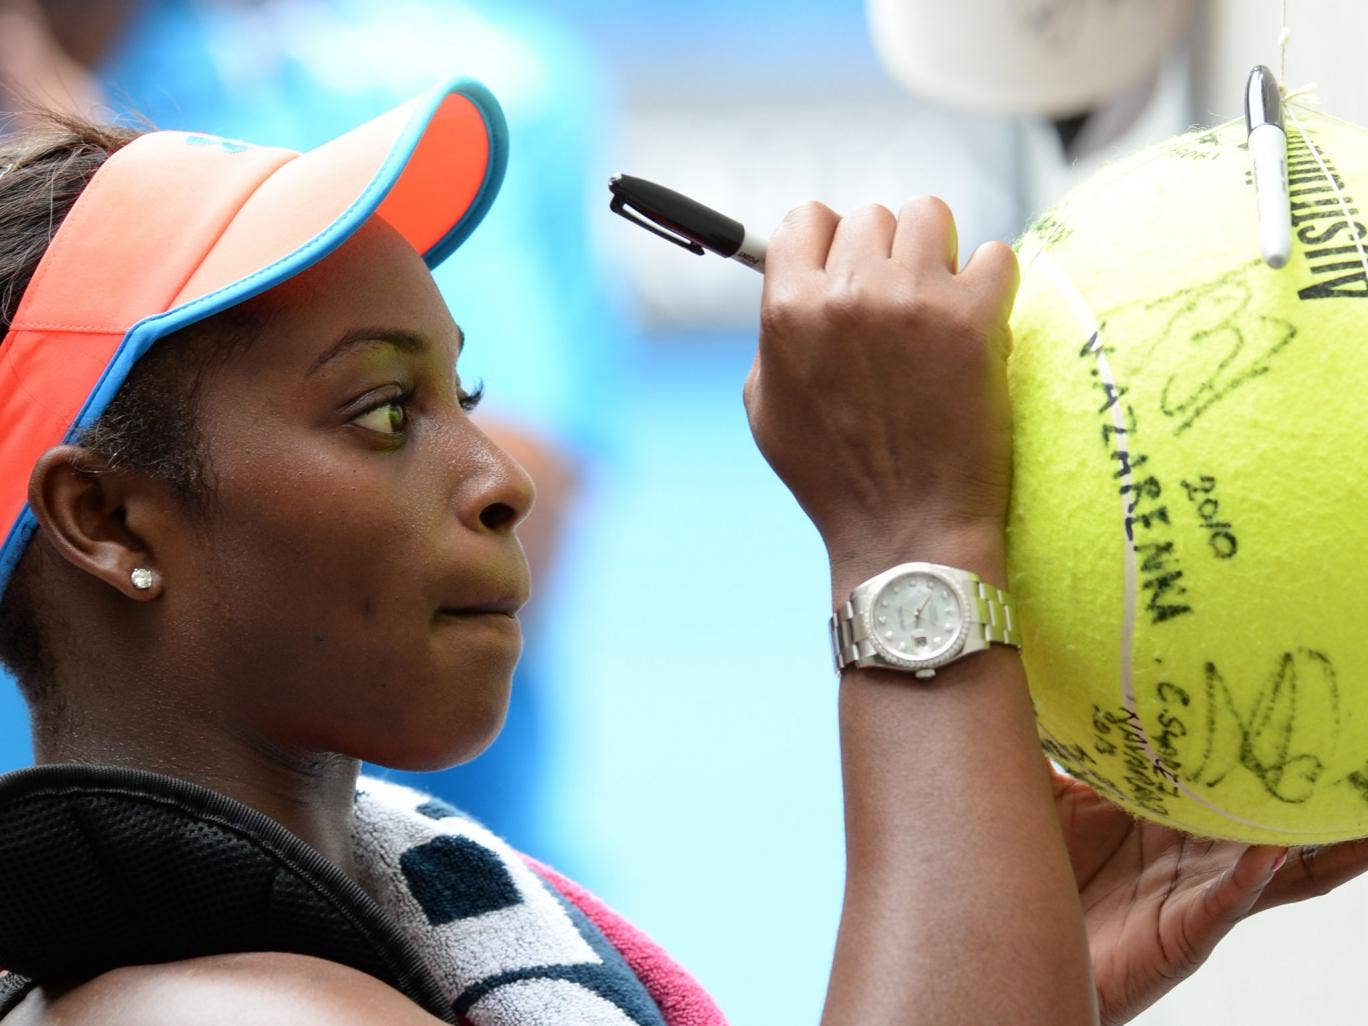 Sloane Stephens pictured at the Australian Open